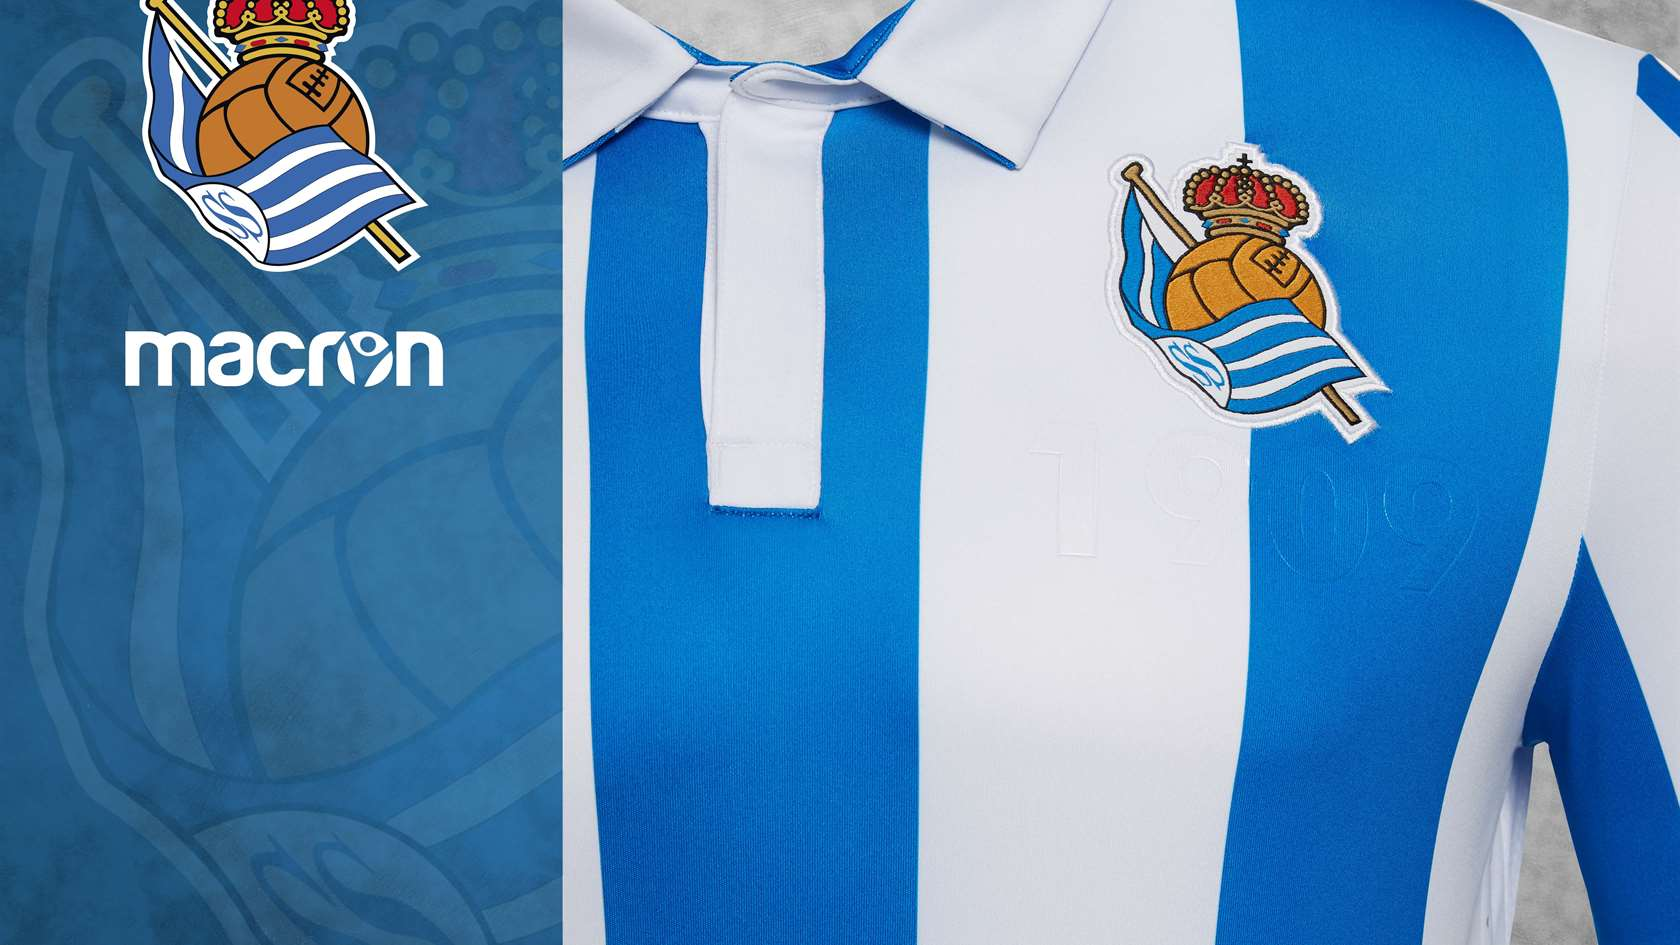 7497fd262 ONLINE SALE  JULY 13. Here is the new shirt! 05 07 2018. Real Sociedad and  Macron ...